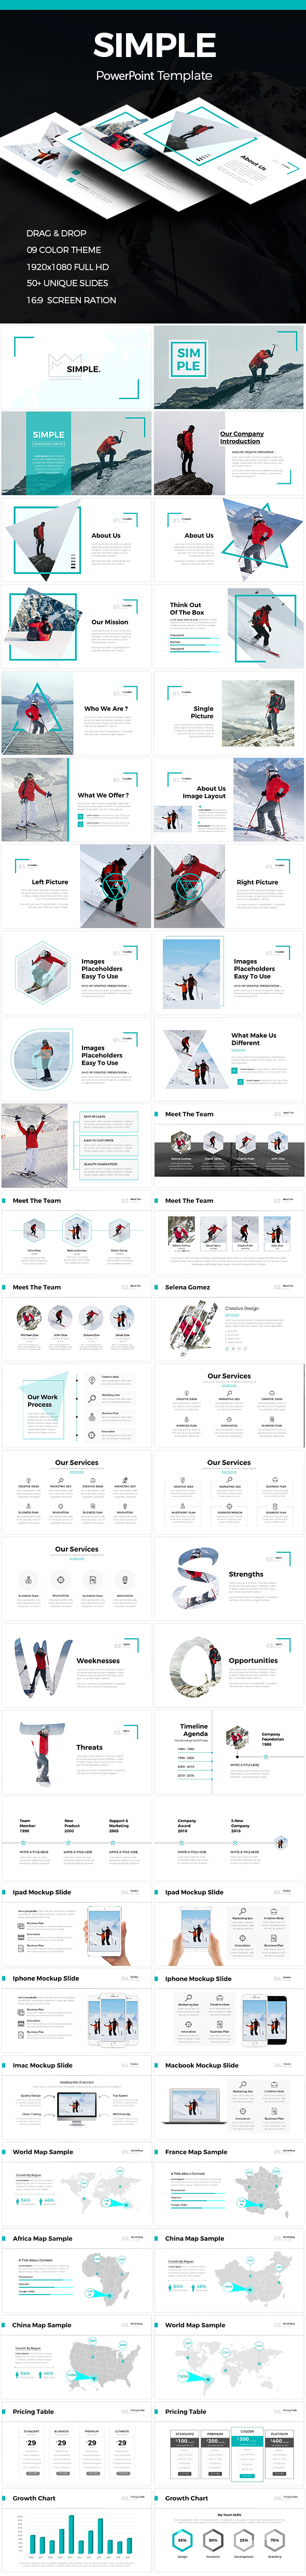 simple - clean powerpoint templatewilliamhenry989 | graphicriver, Modern powerpoint